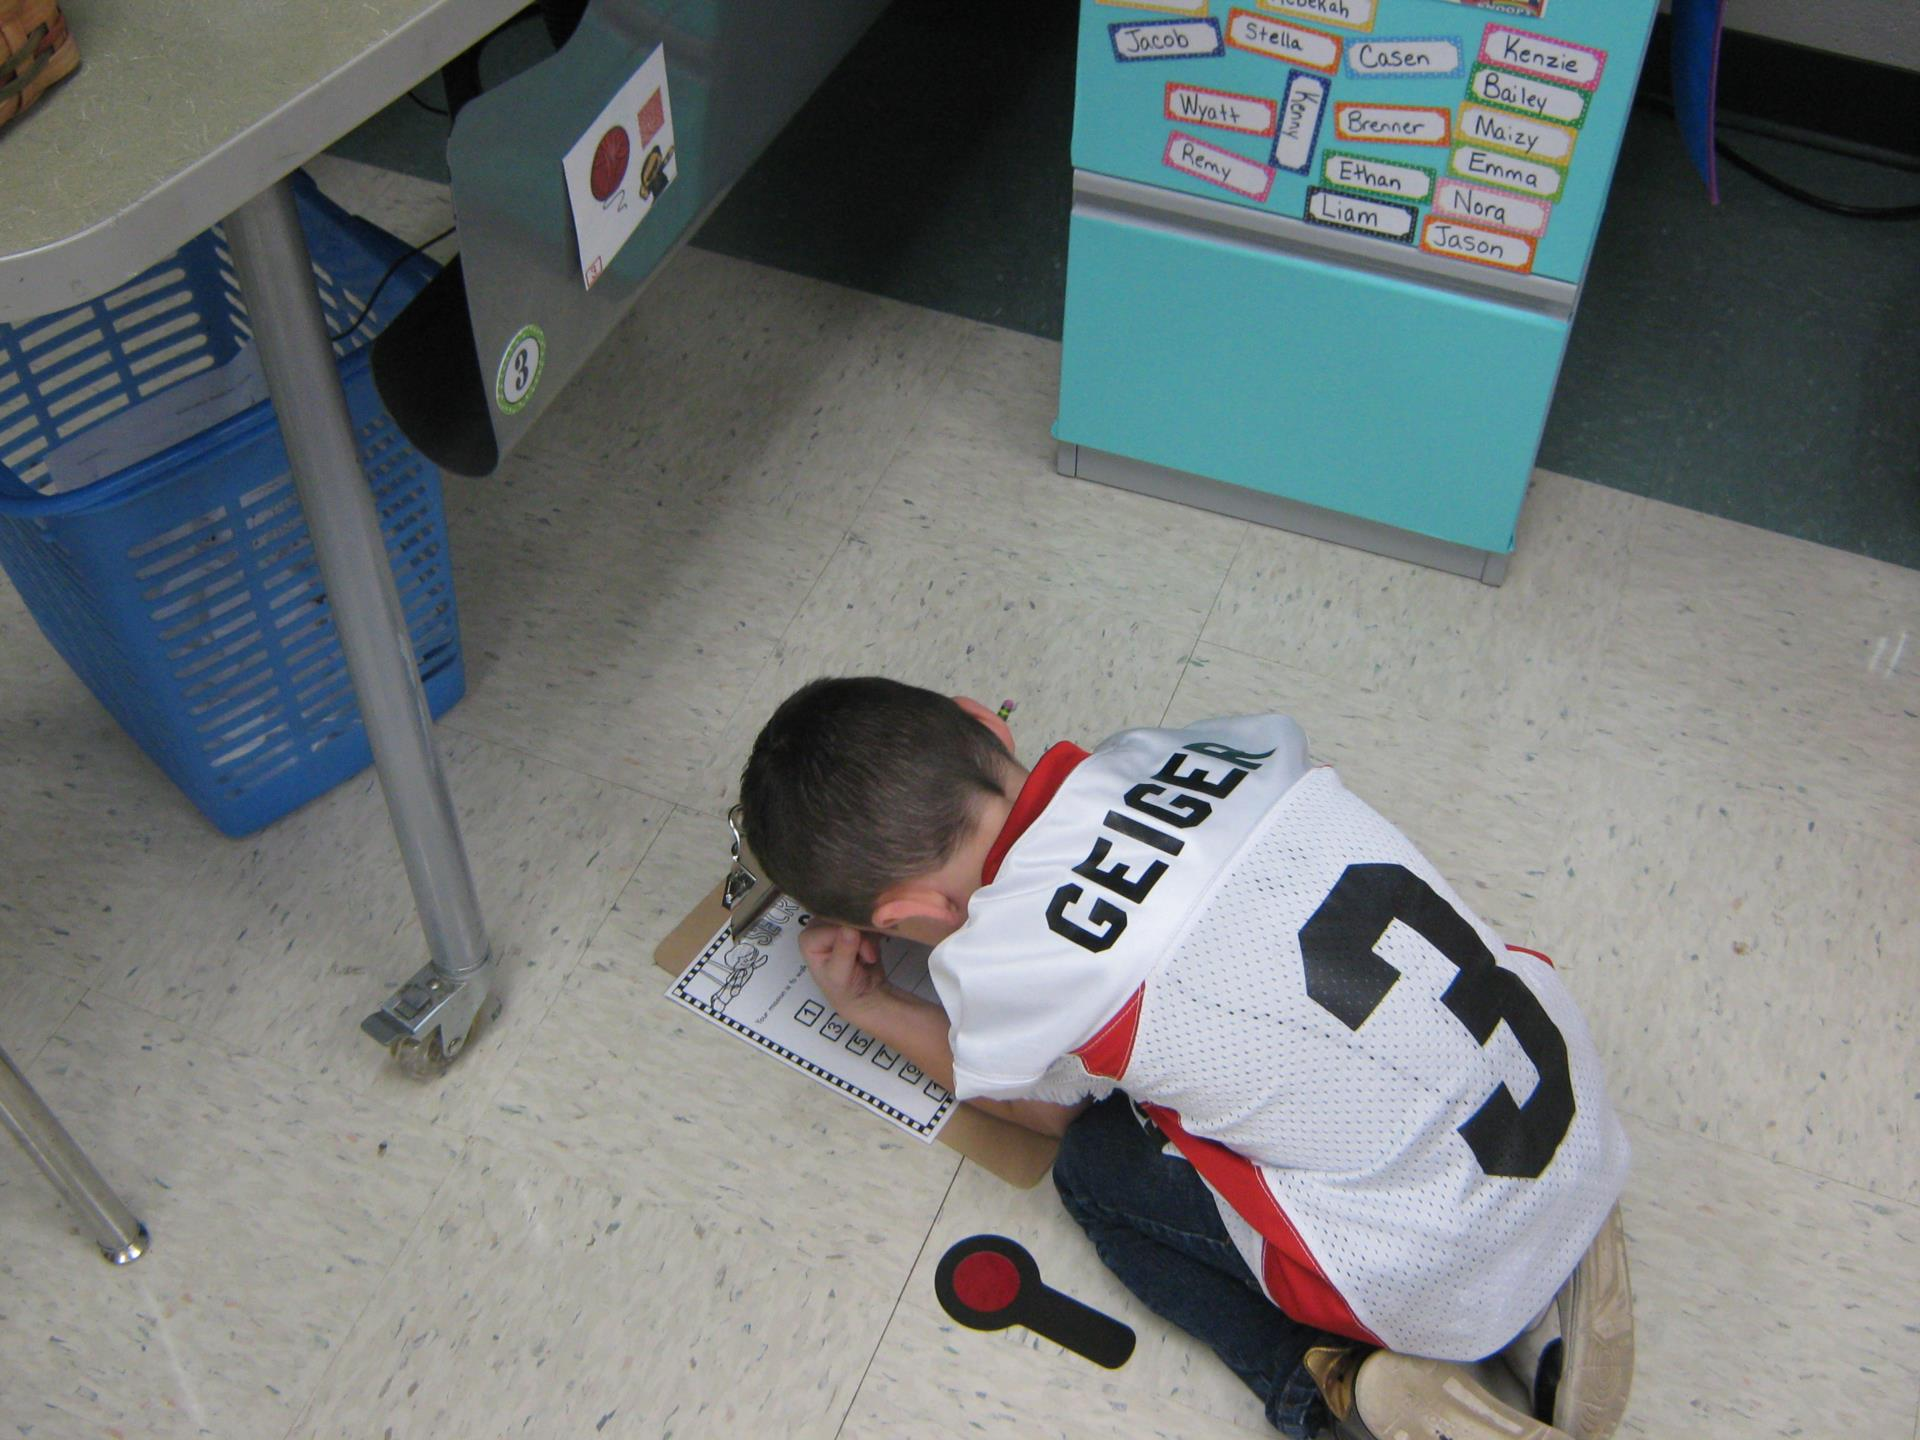 Student recording his discovery on a clipboard.  His magnifying glass is laying on the floor next to him.